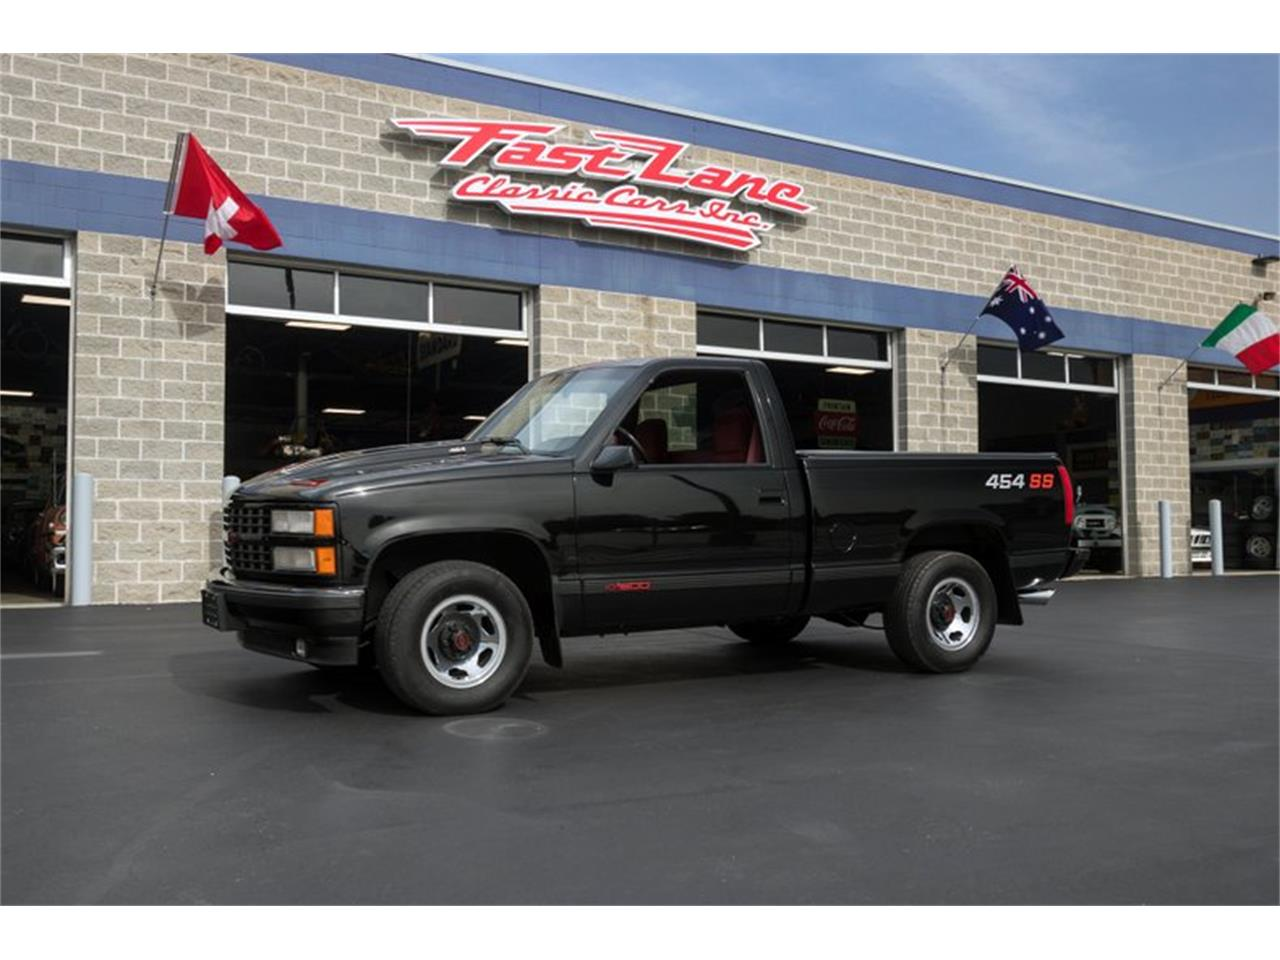 for sale 1990 chevrolet 1500 in st. charles, missouri cars - saint charles, mo at geebo